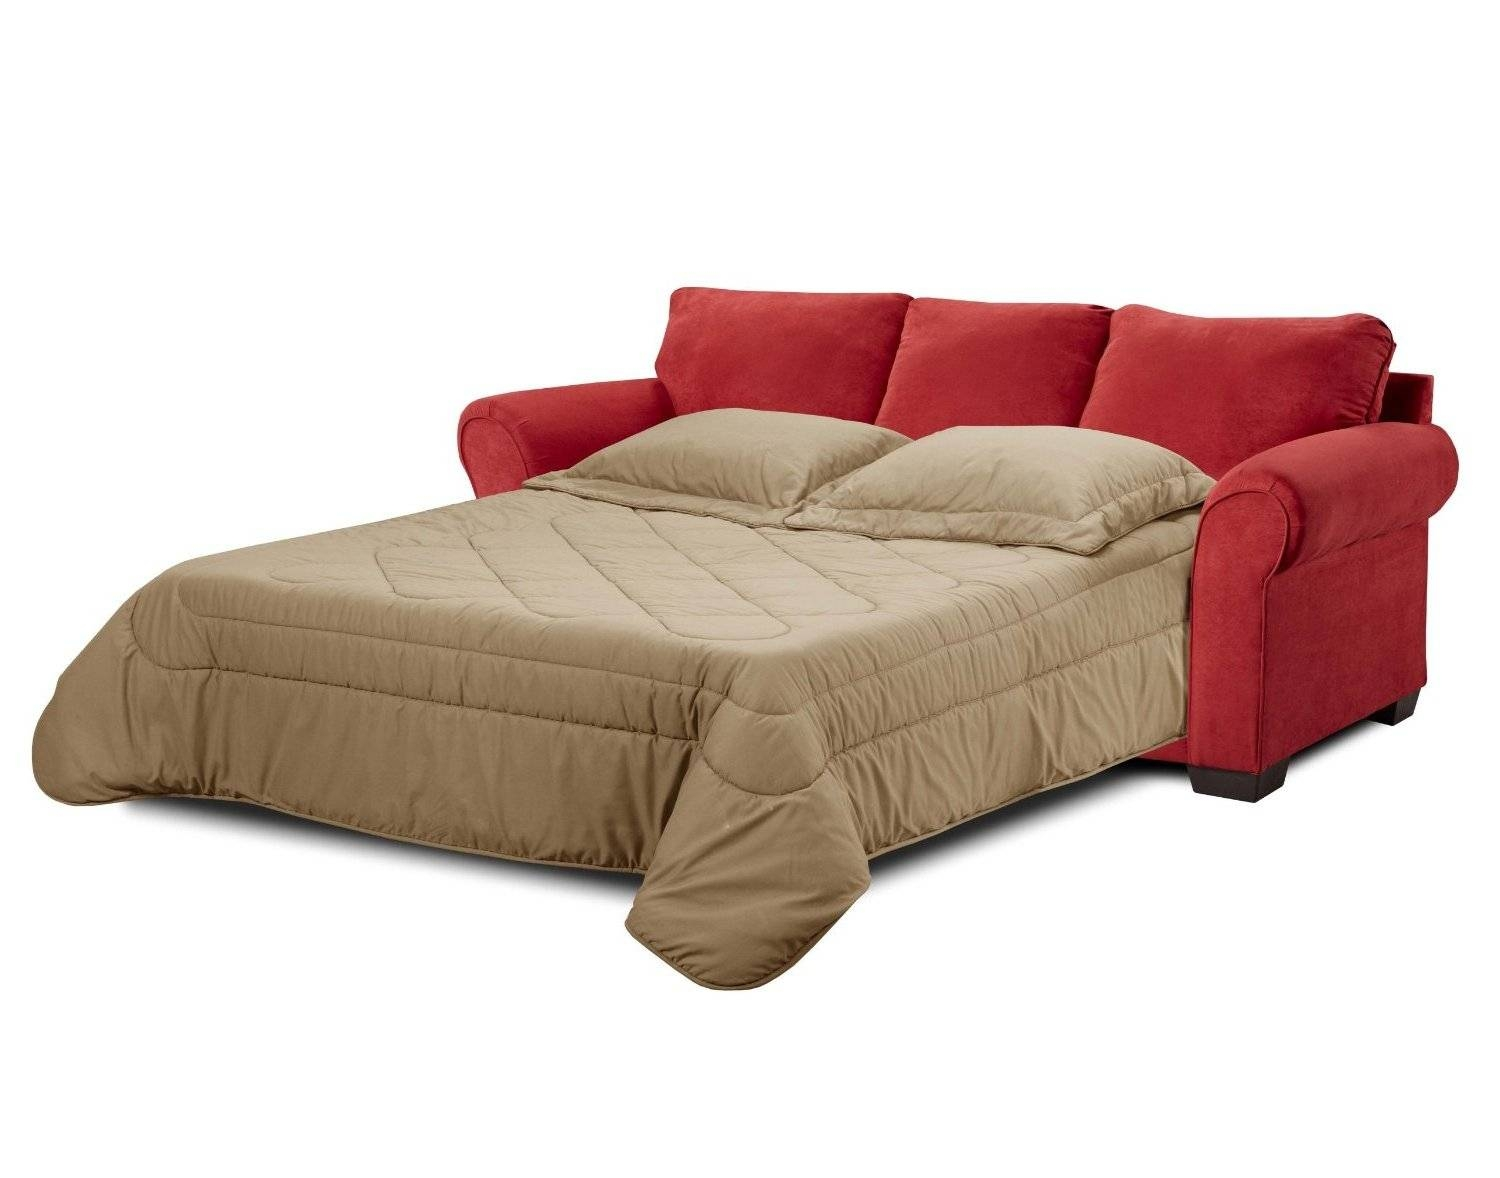 Ottoman Sofa Bed Sydney - Leather Sectional Sofa pertaining to Cushion Sofa Beds (Image 15 of 30)